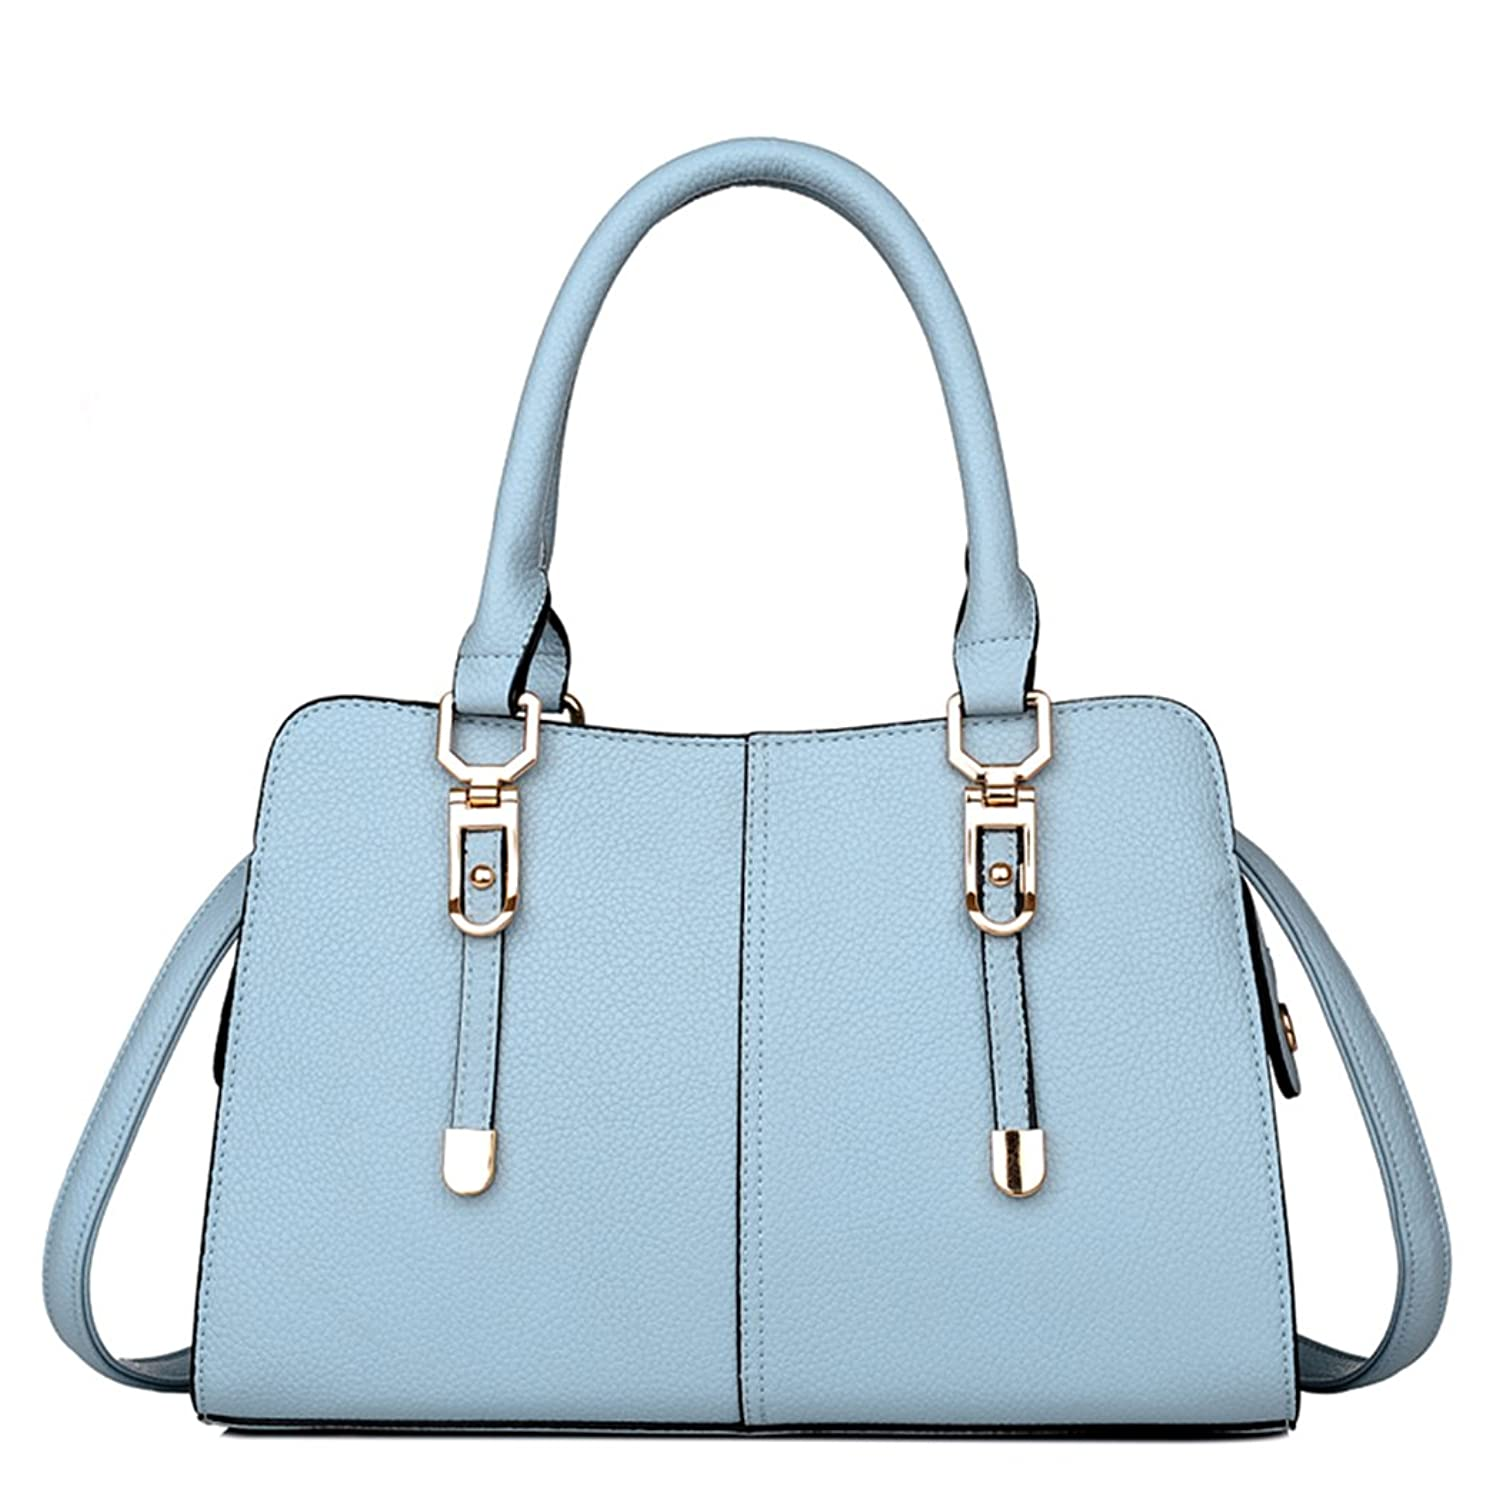 FAIRYSAN Women Shoulder Bag Business Handbag PU Leather Top Handle Bag Purse